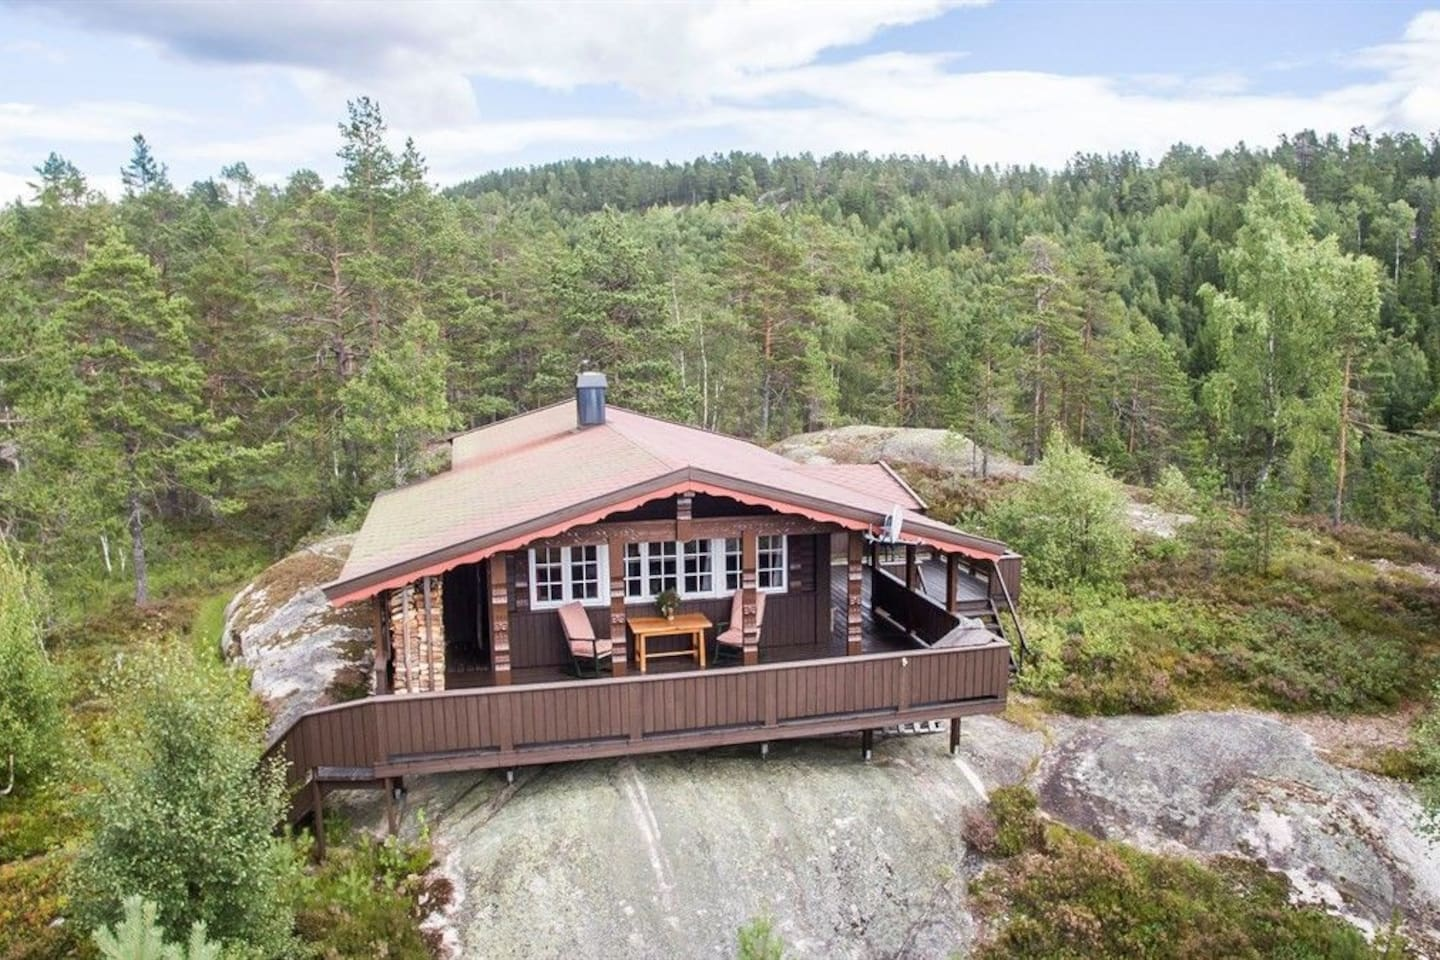 Cabin seen from the air (drone photo).